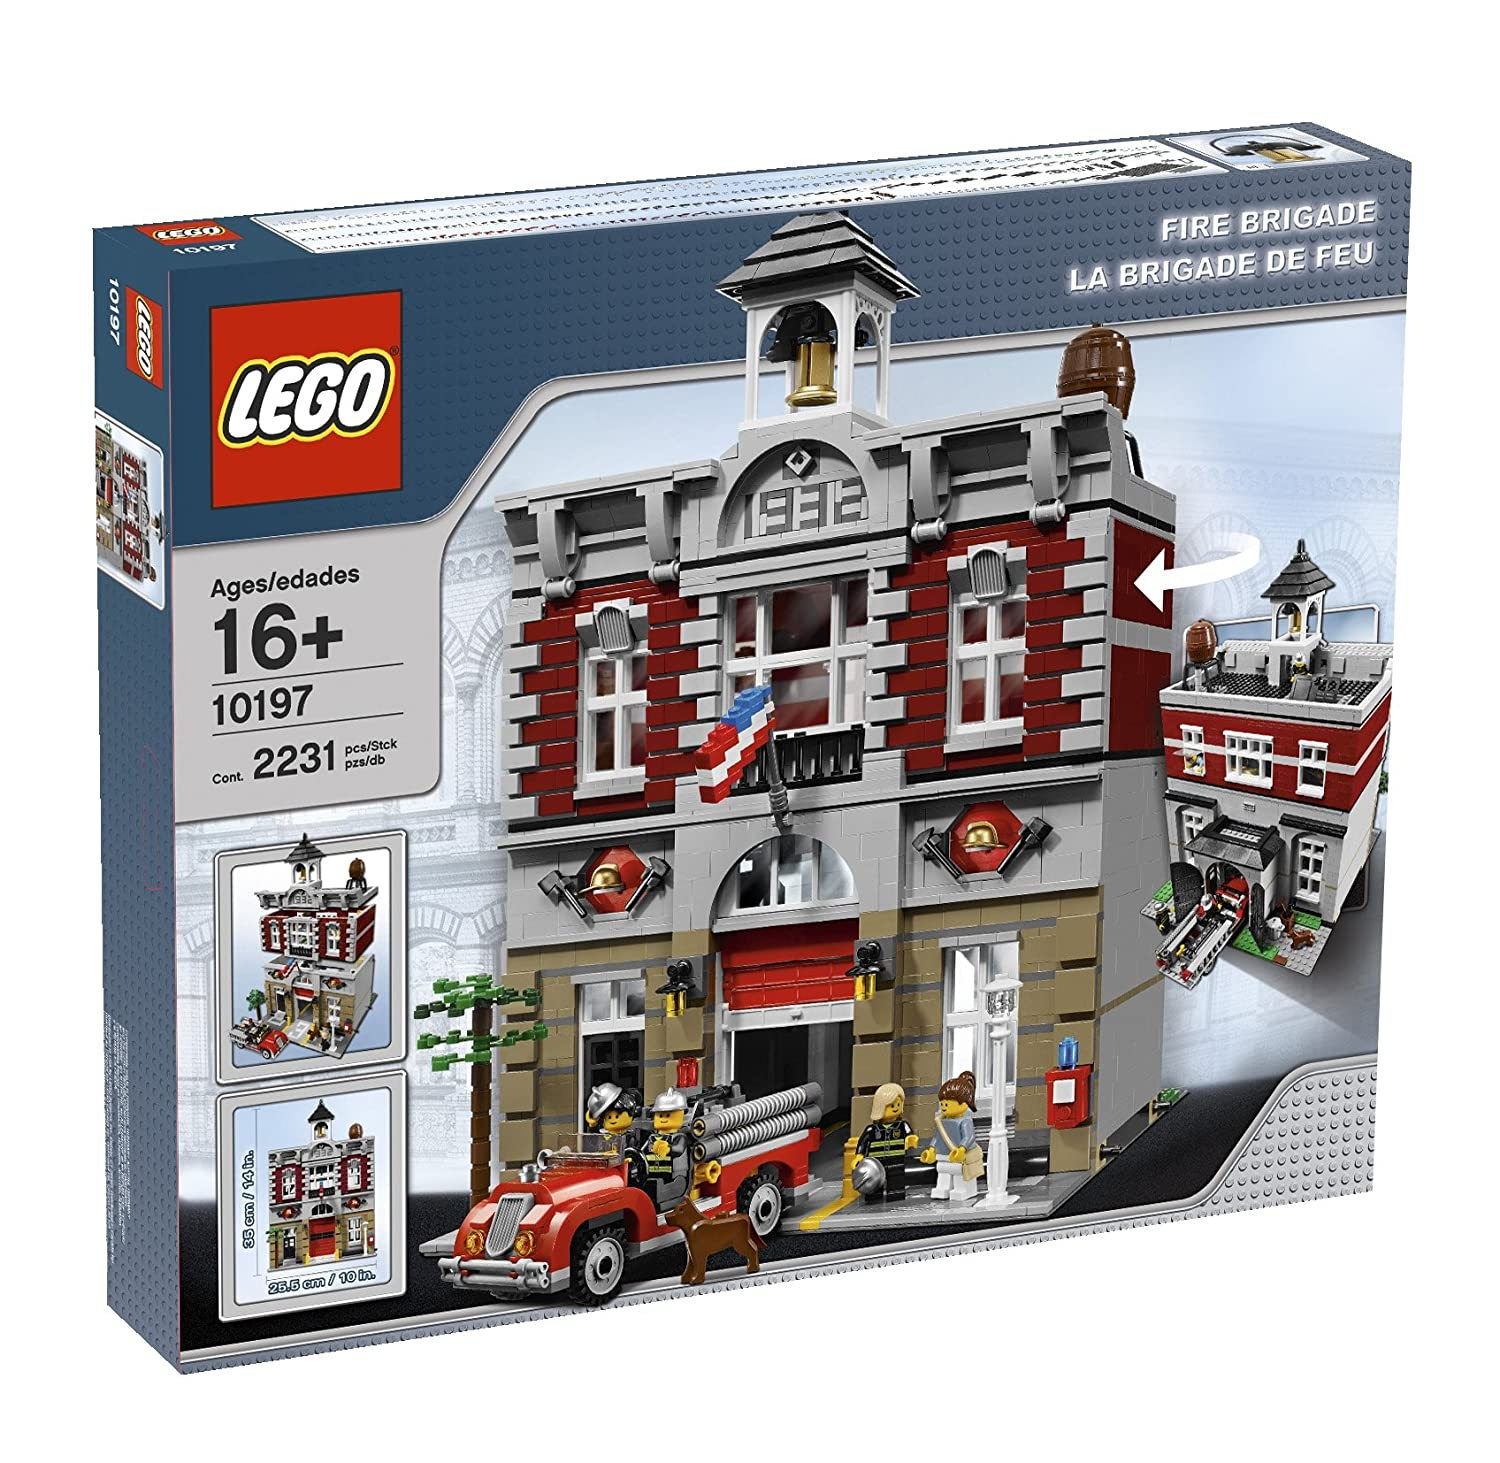 Top 9 Best LEGO Fire Station Sets Reviews in 2020 9